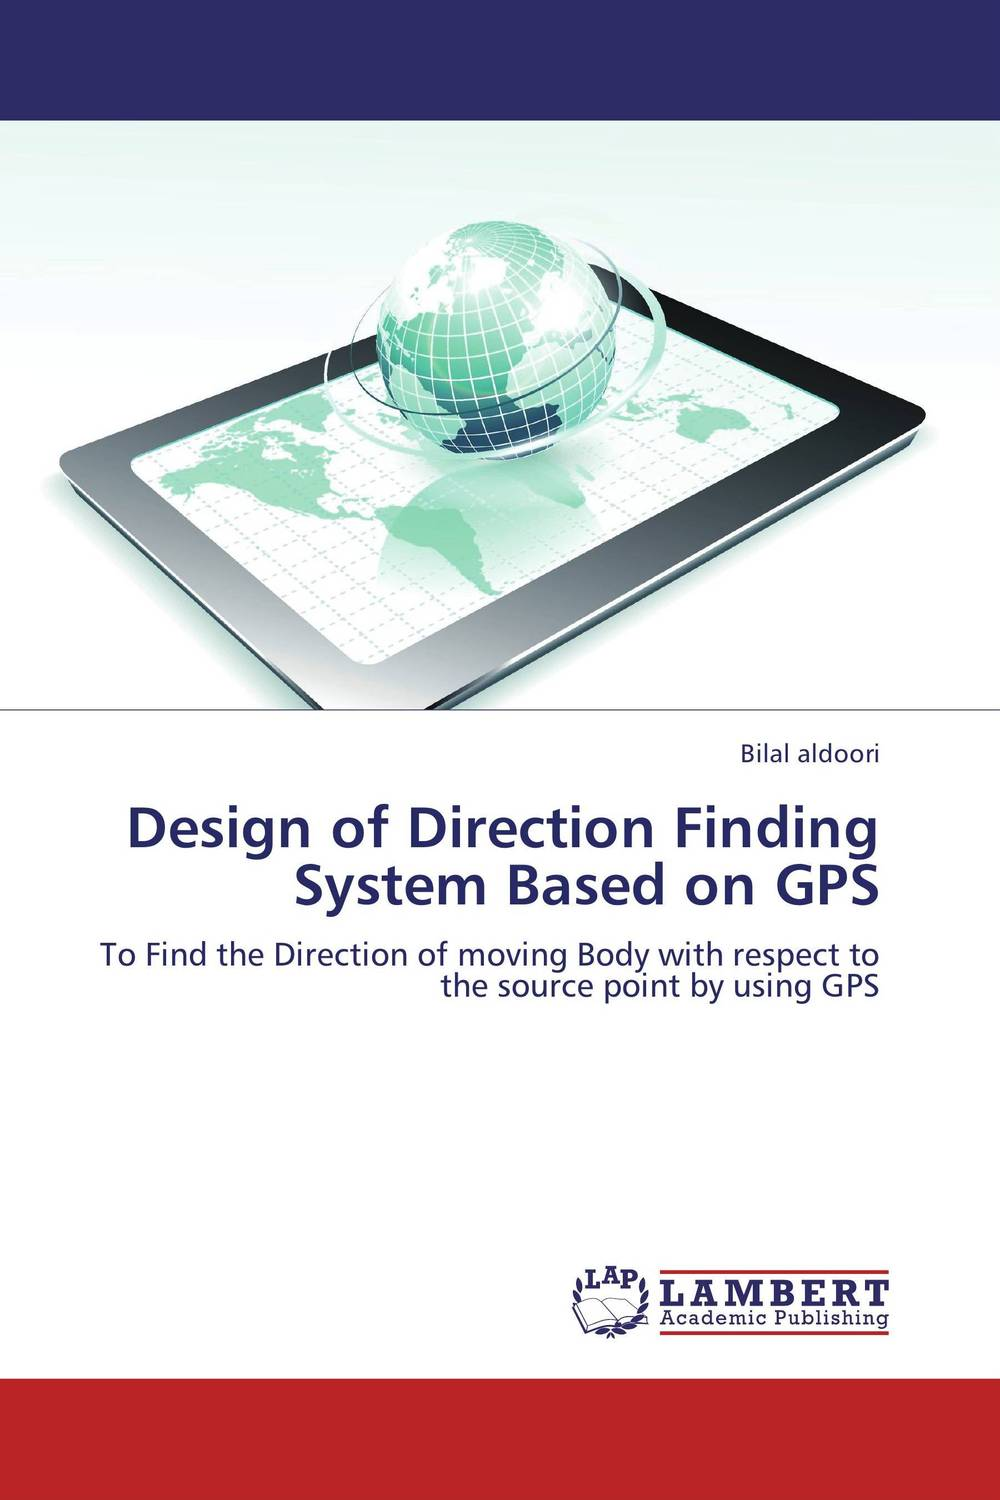 Design of Direction Finding System Based on GPS сигнализатор поклевки hoxwell new direction k9 r9 5 1